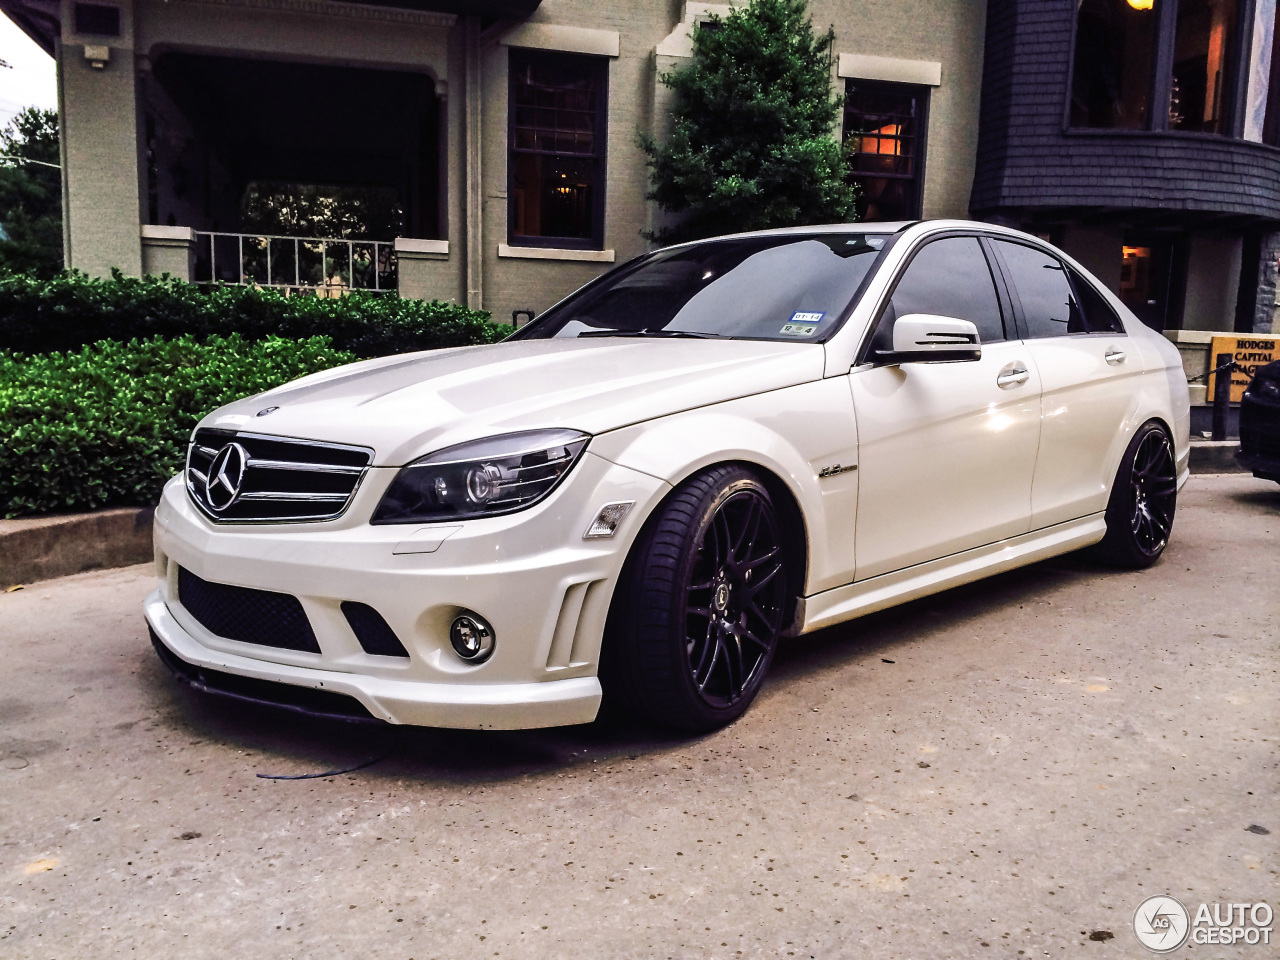 Mercedes benz c 63 amg w204 9 july 2014 autogespot for Mercedes benz mercedes benz mercedes benz